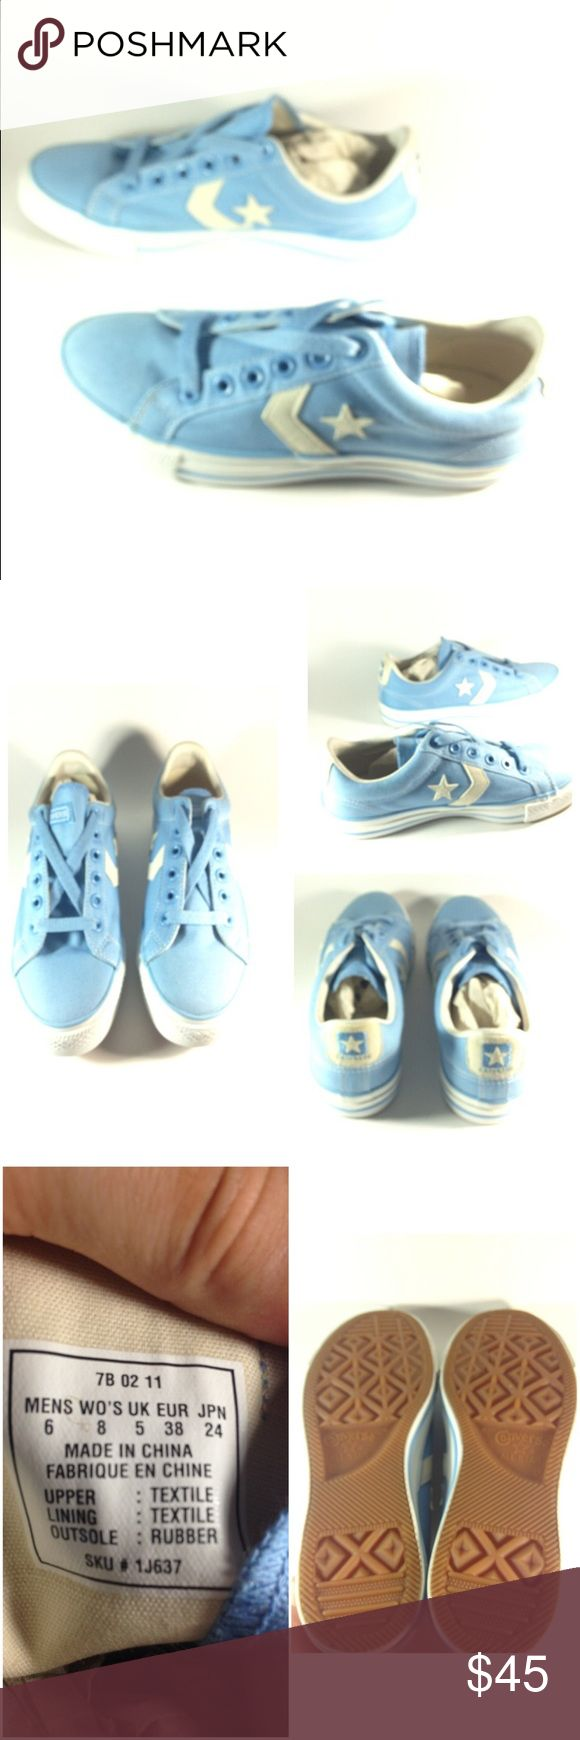 NWOT Vintage Light blue Converse star player Brand new never worn! Vintage baby blue Converse. No box b Converse Shoes Sneakers